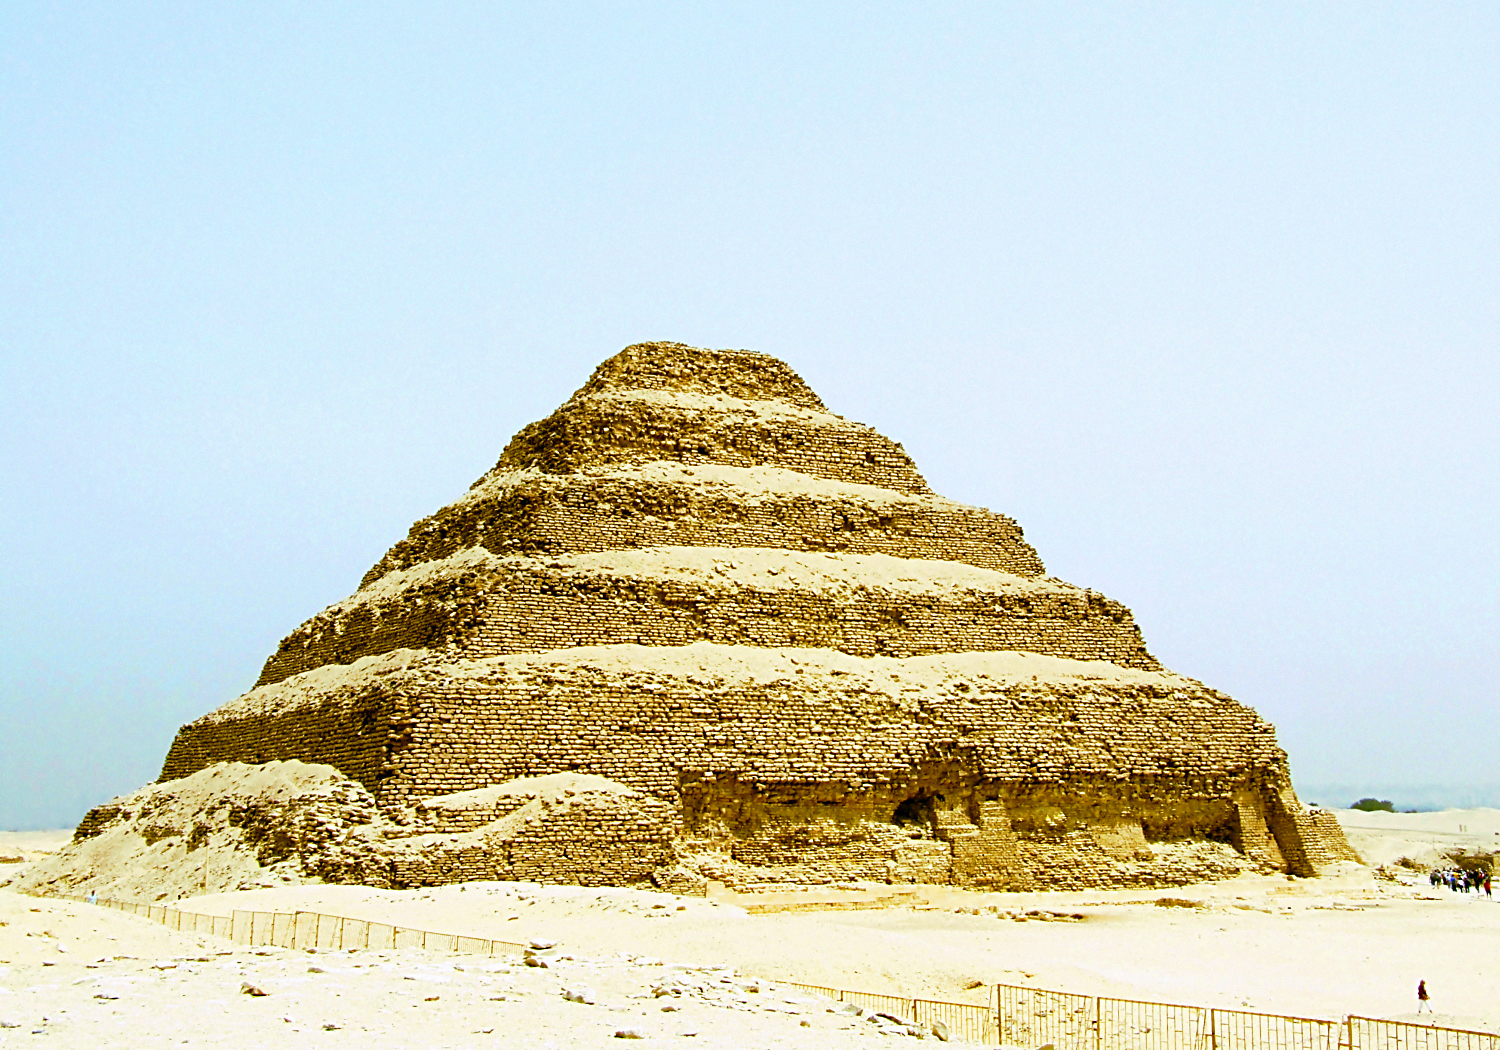 Pyramid at Sakkara